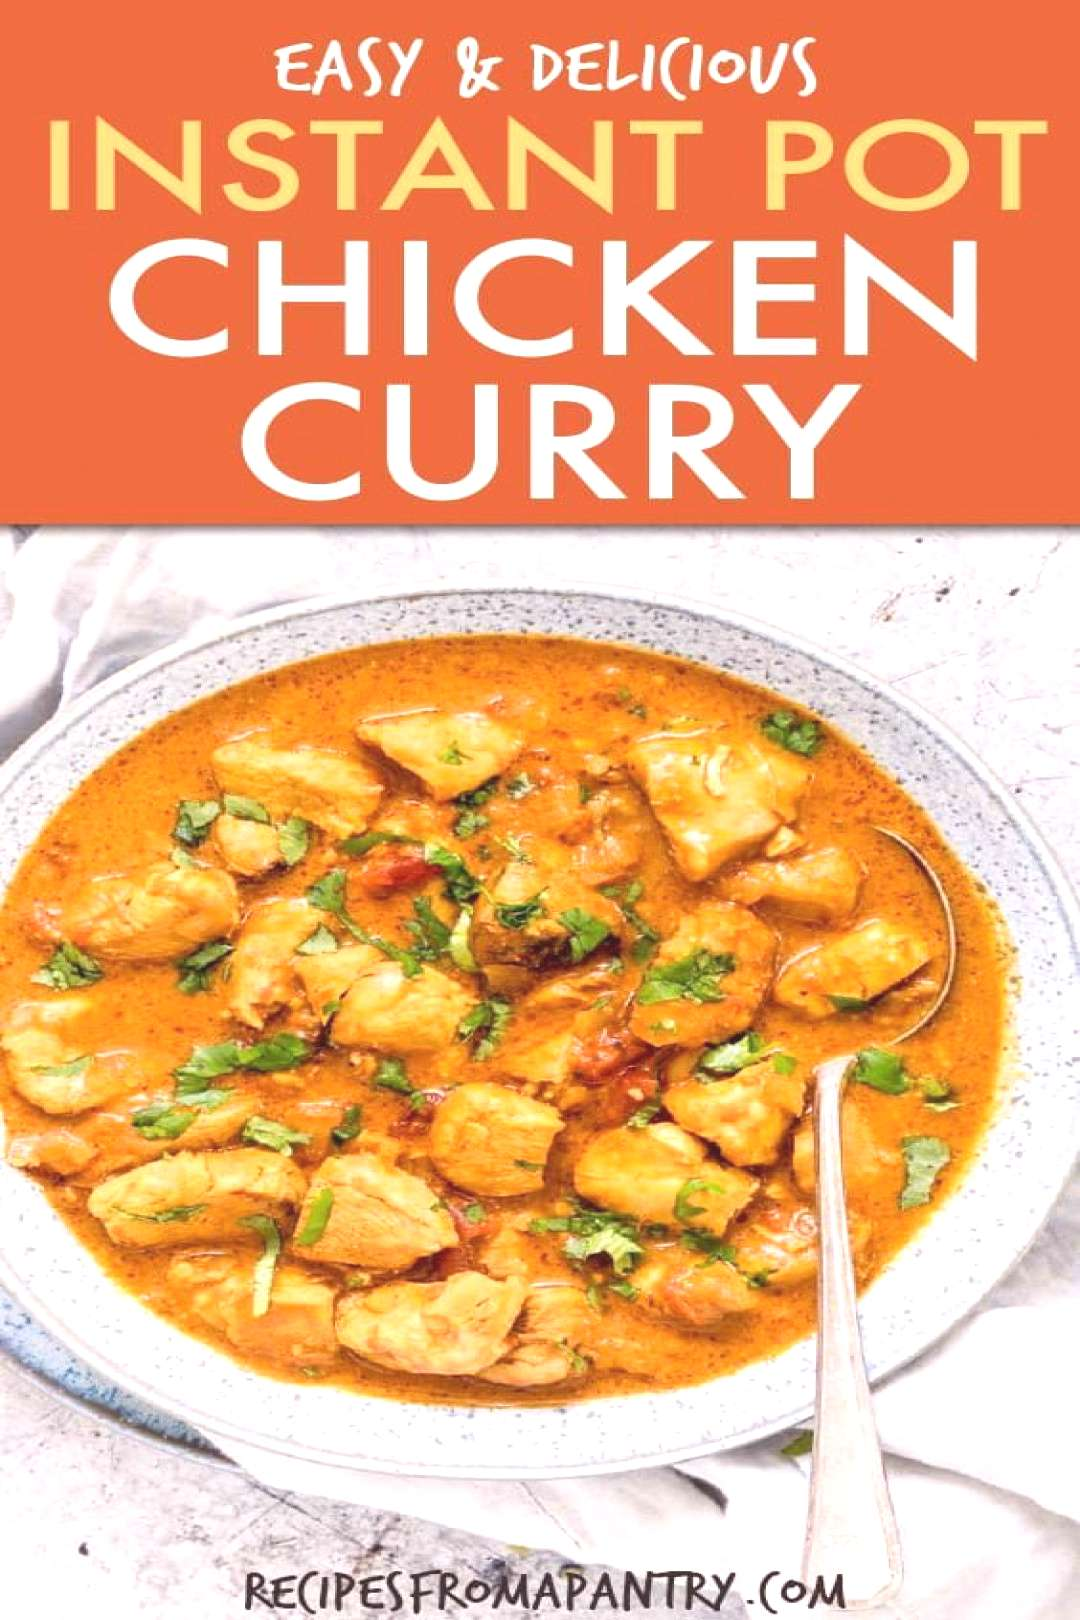 This Instant Pot Chicken Curry is the BEST chicken curry recipe ever. It is easy to make from pantr